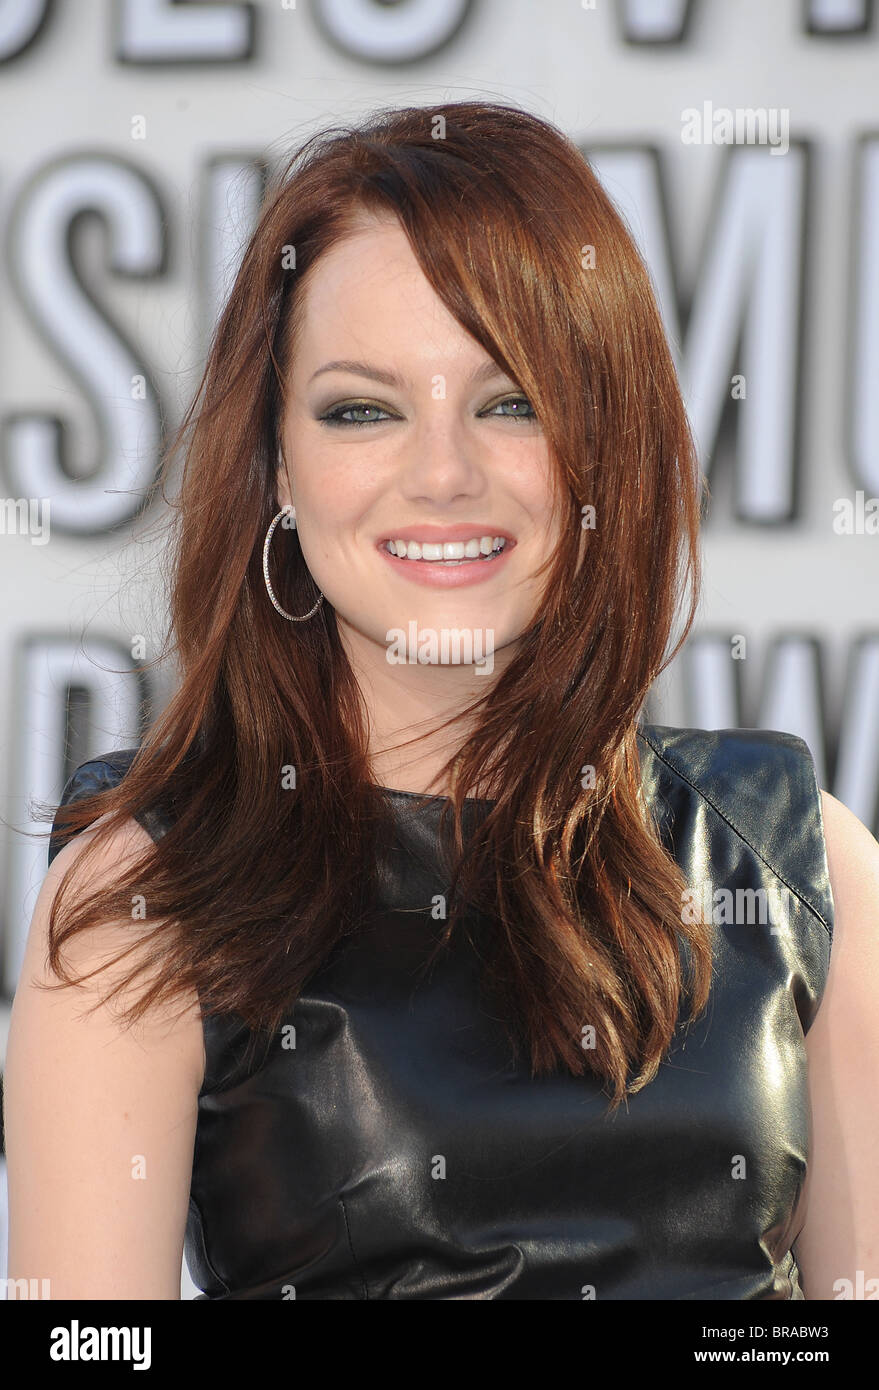 EMMA STONE -US actress in September 2010. Photo Jeffrey Mayer - Stock Image